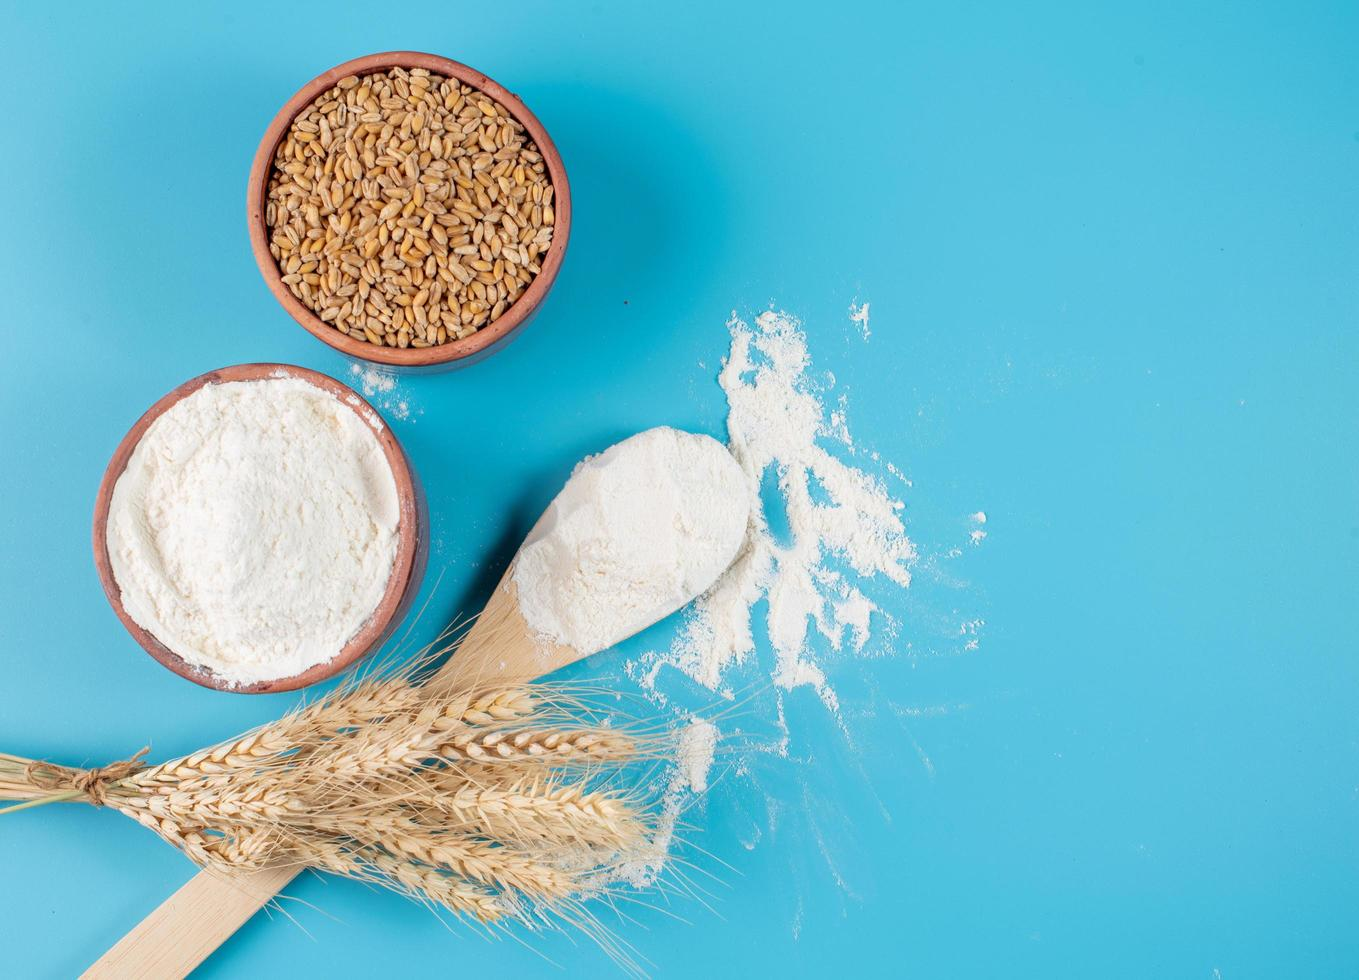 Flour and wheat on blue background photo